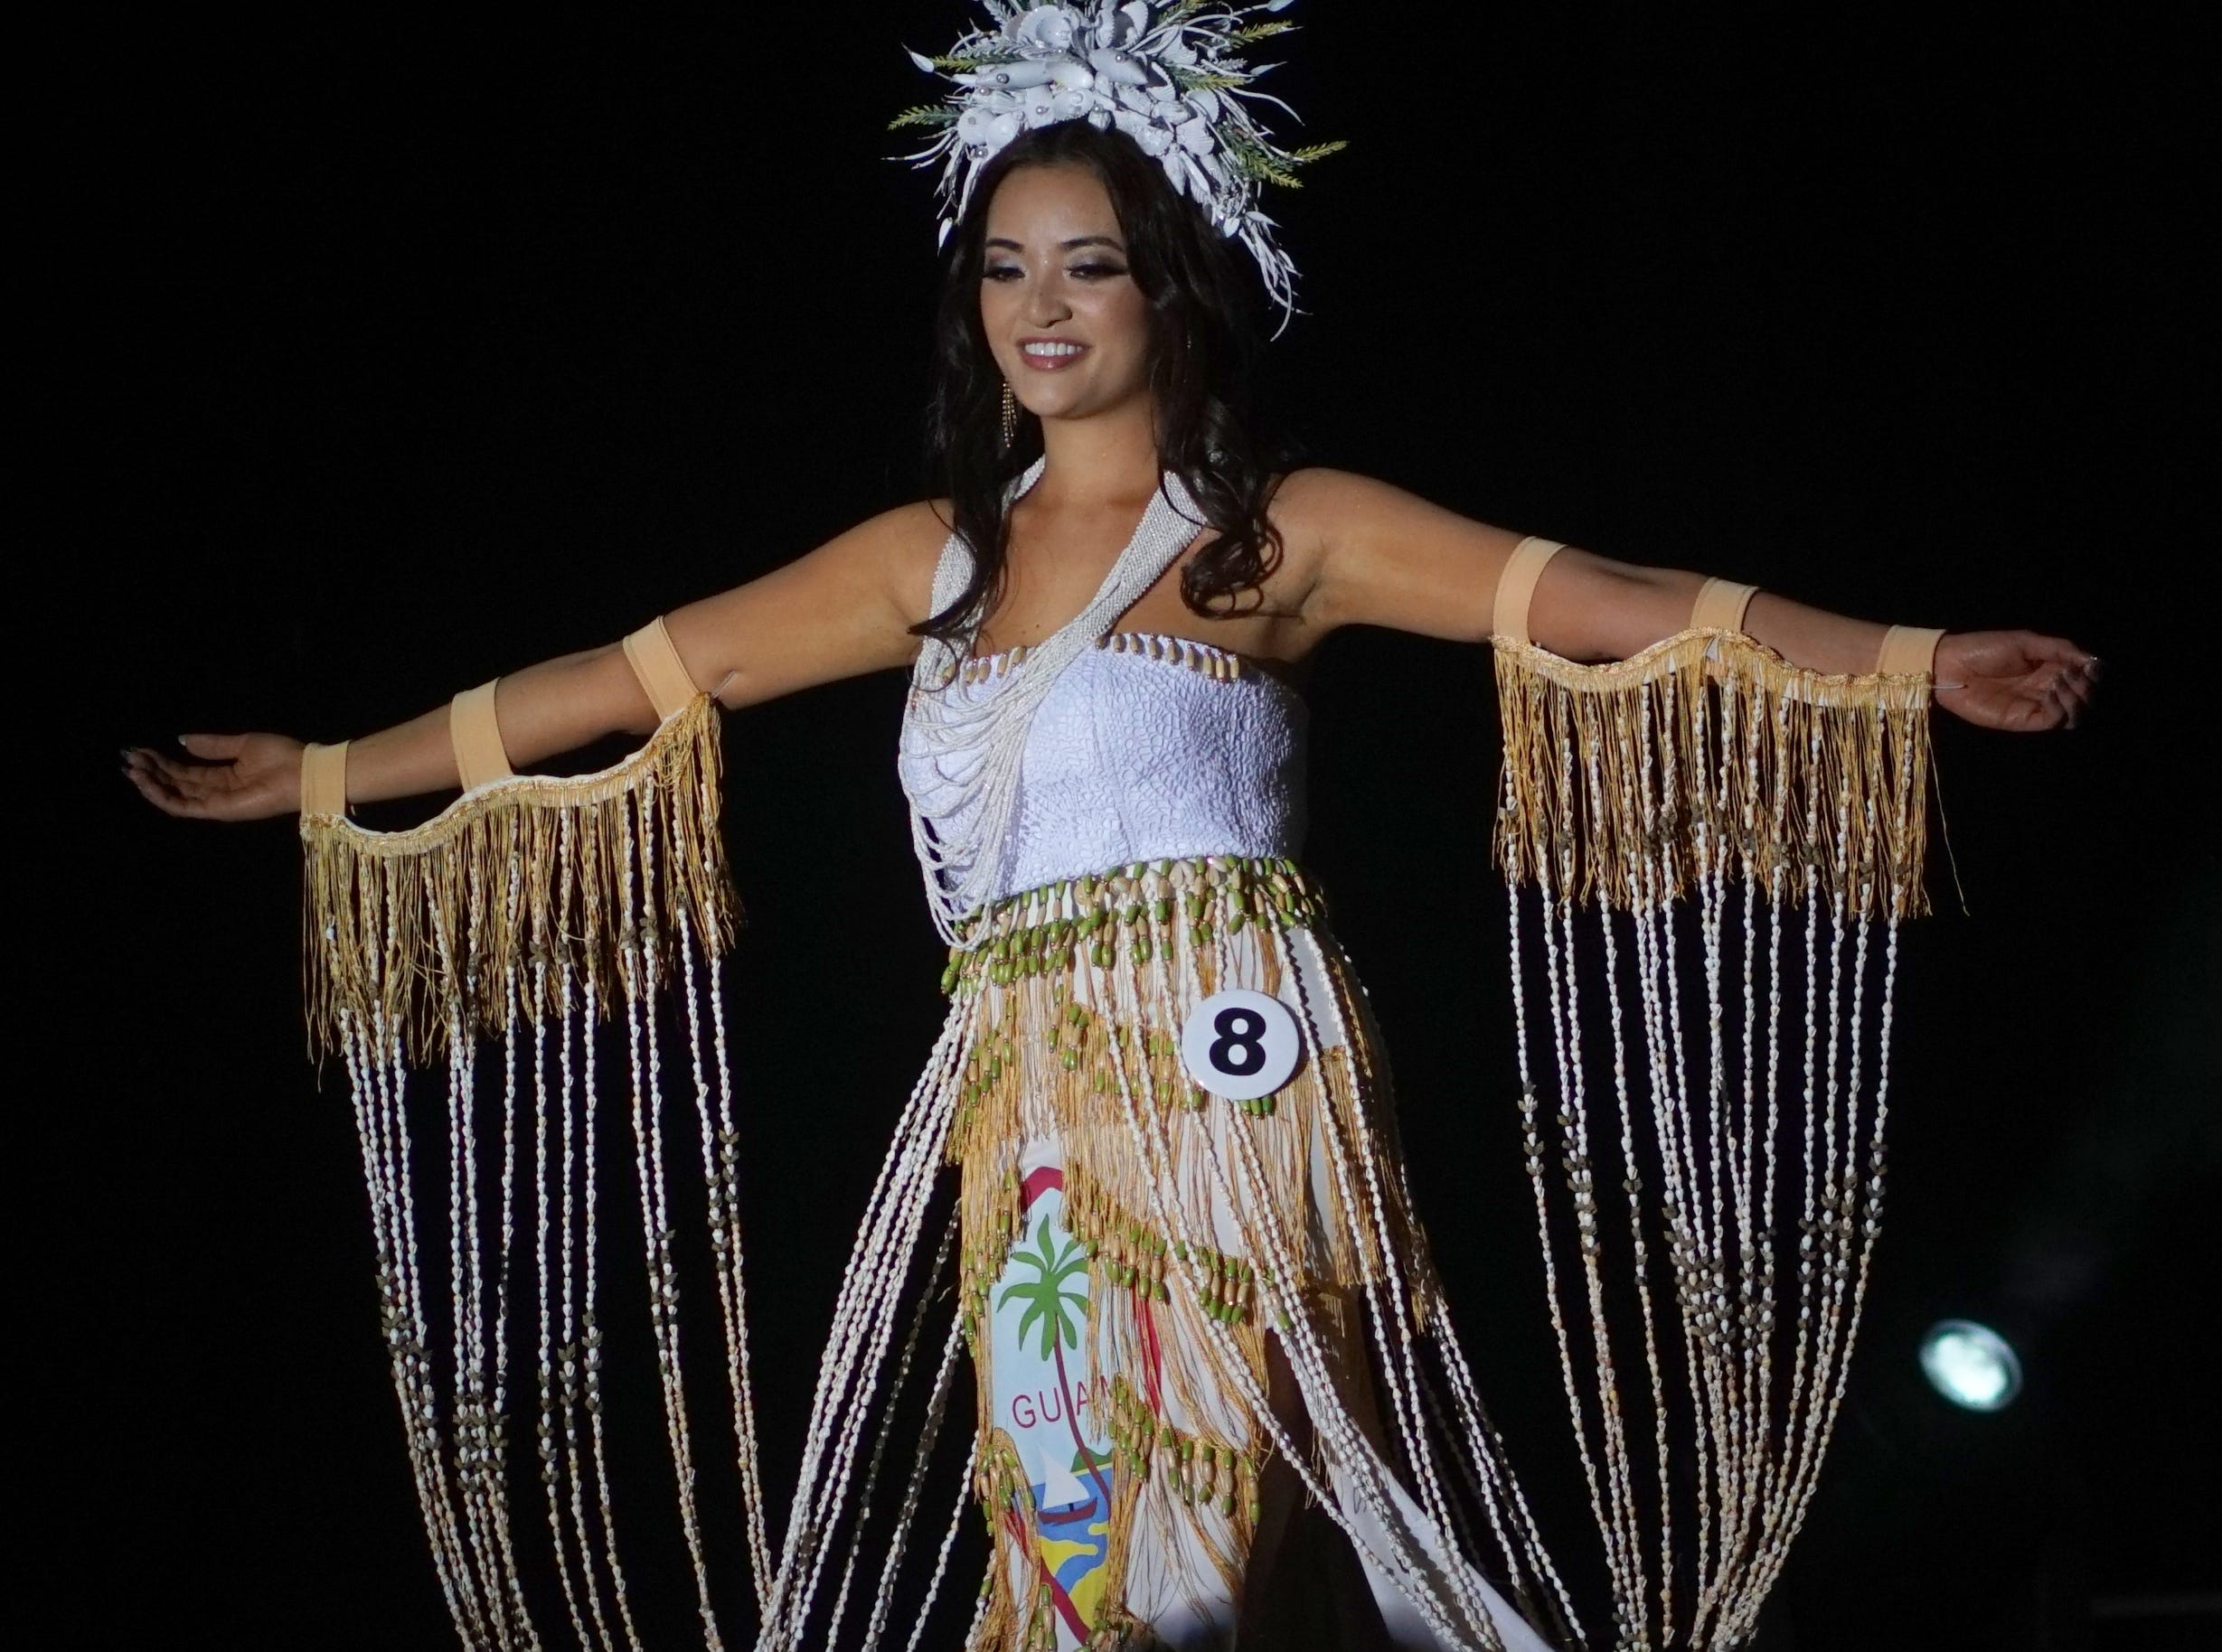 Native Costume portion of the Miss Universe Guam pageant.  Contestant 8 Noelle Fuentes Uy-Tuazon.  The pageant was held at  Sheraton Laguna Guam Resort.